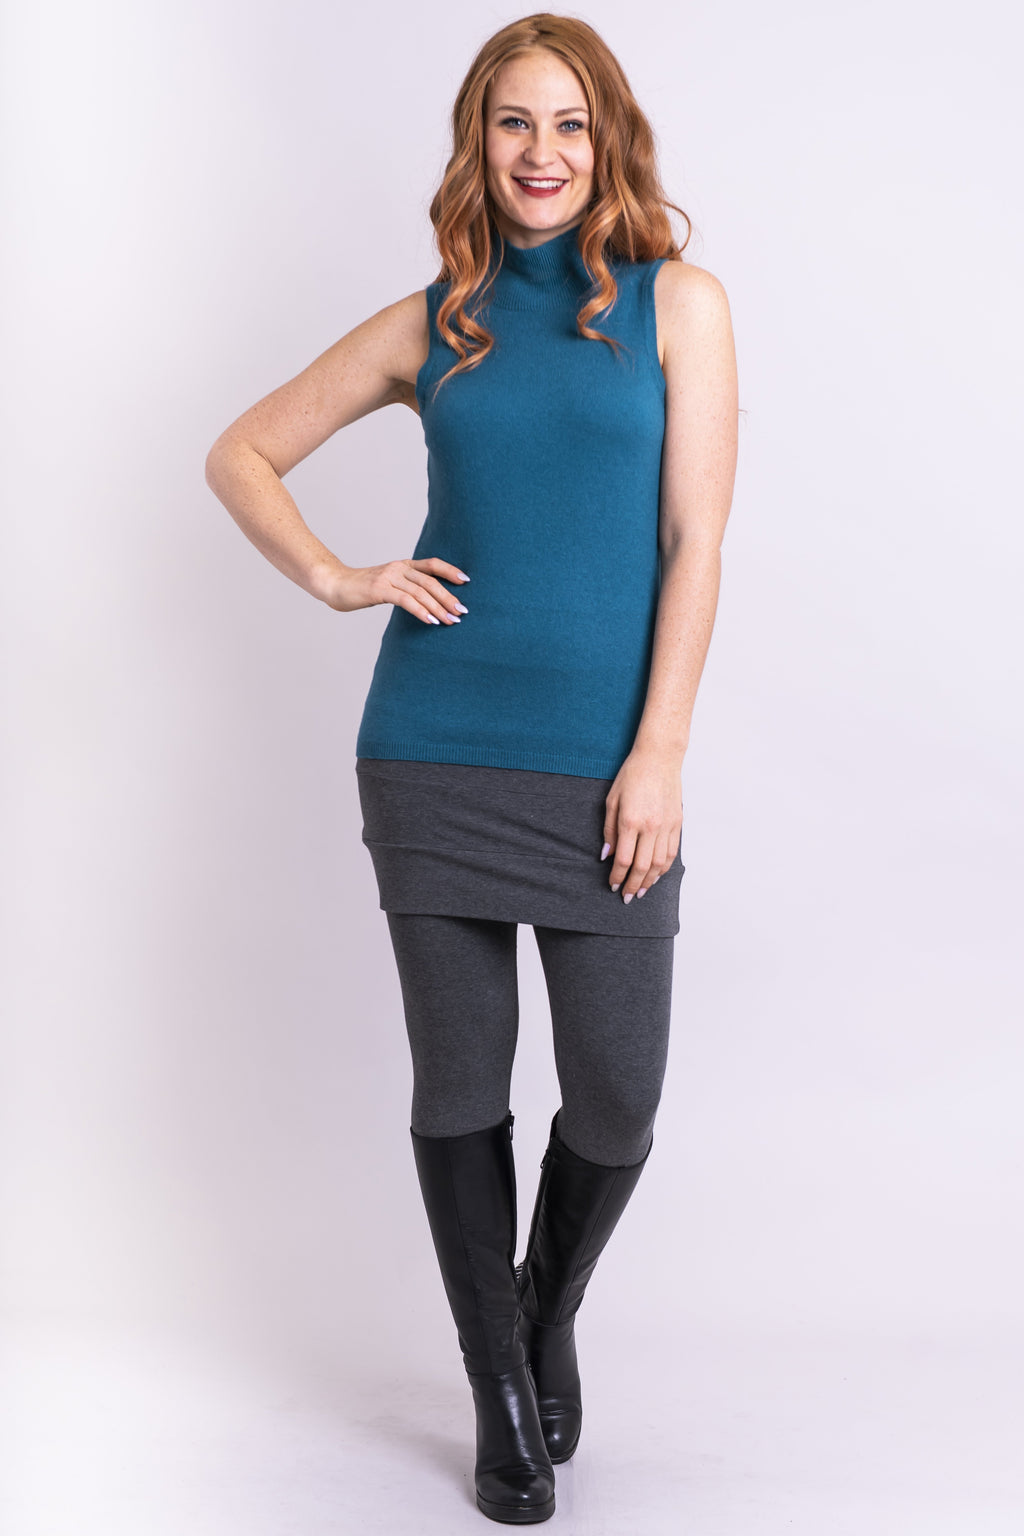 Joplin Sweater, Jade, Cashmere - Blue Sky Clothing Co